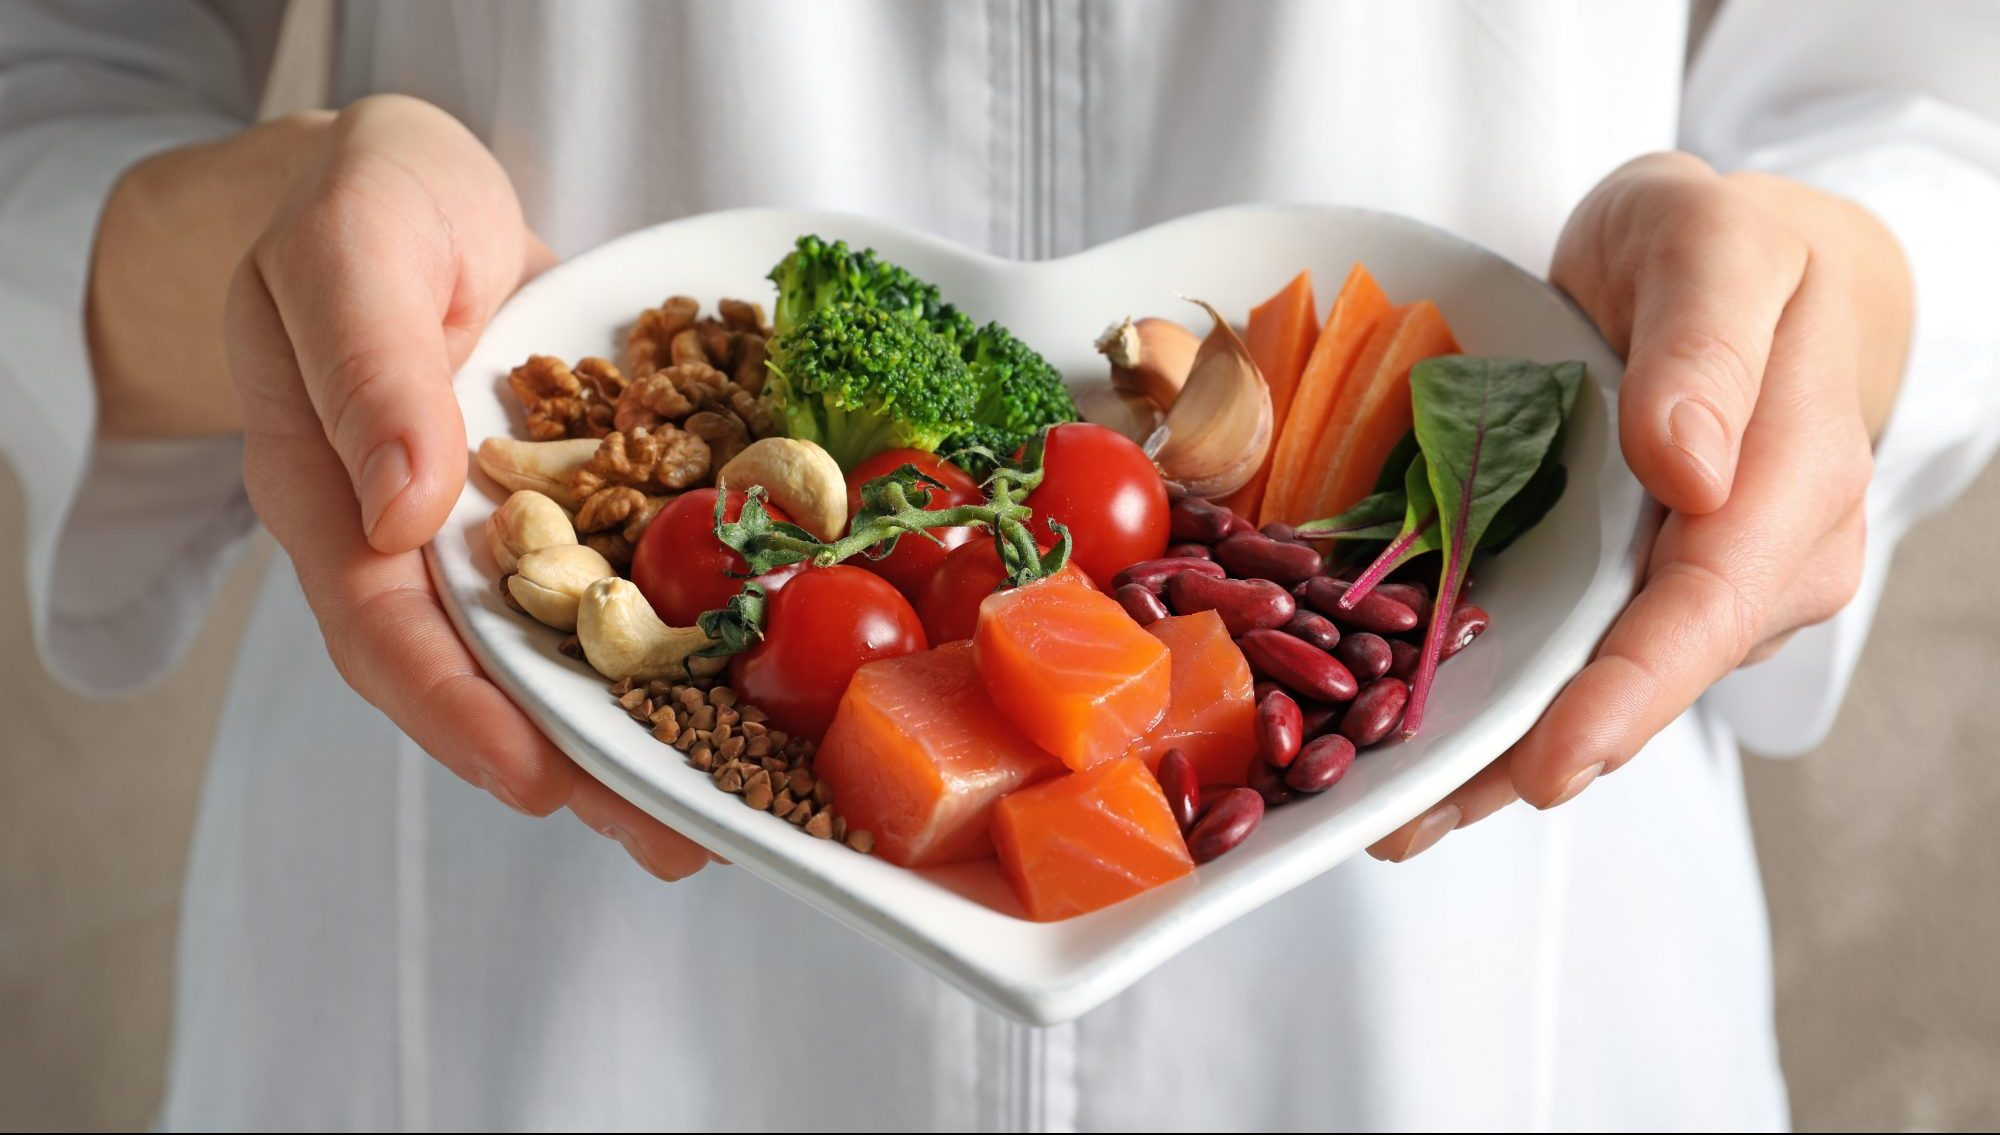 Nutrition Counselling For Heart Health